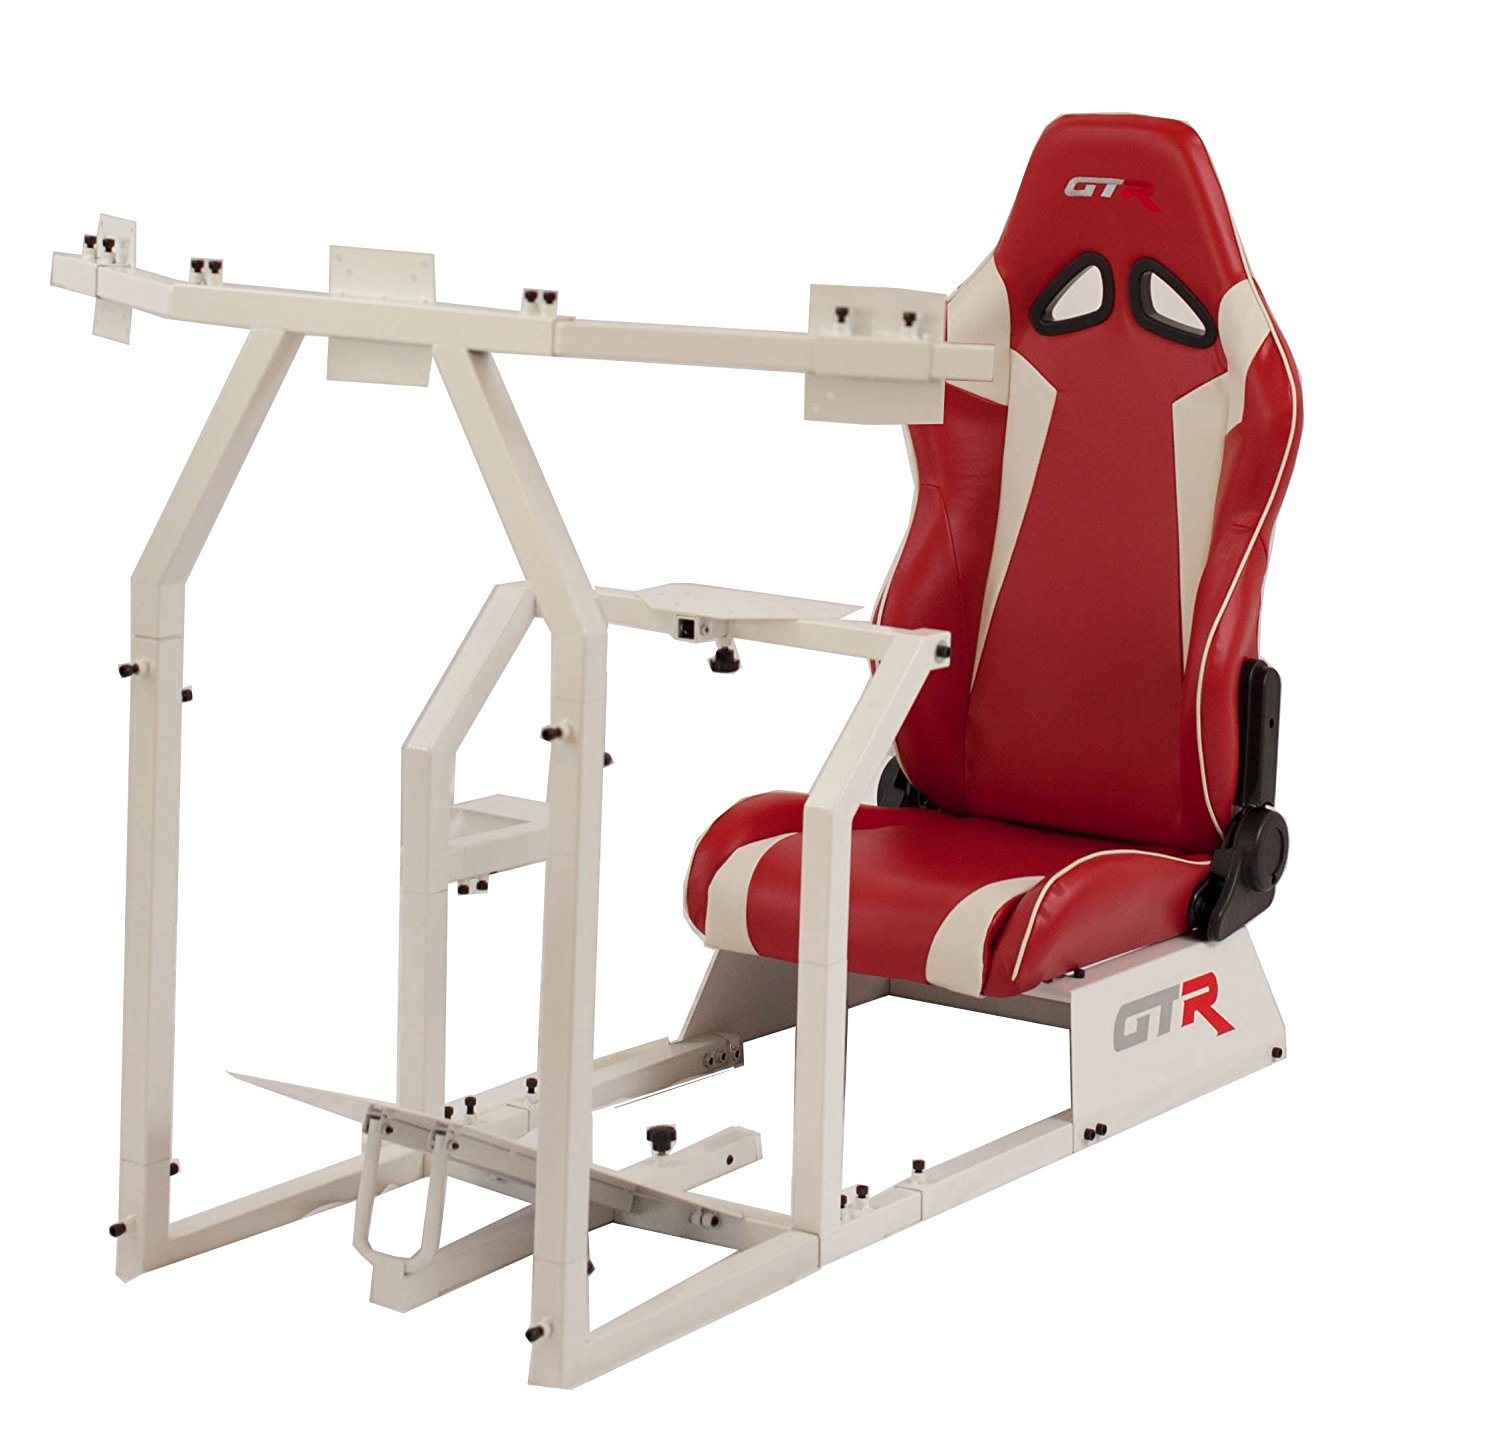 GTR Racing Simulator GTAF-WHT-S105LRDWHT - GTA-F Model (White) Triple or Single Monitor Stand with Red/White Adjustable Leatherette Seat, Racing Simulator Cockpit gaming chair Single Monitor Stand